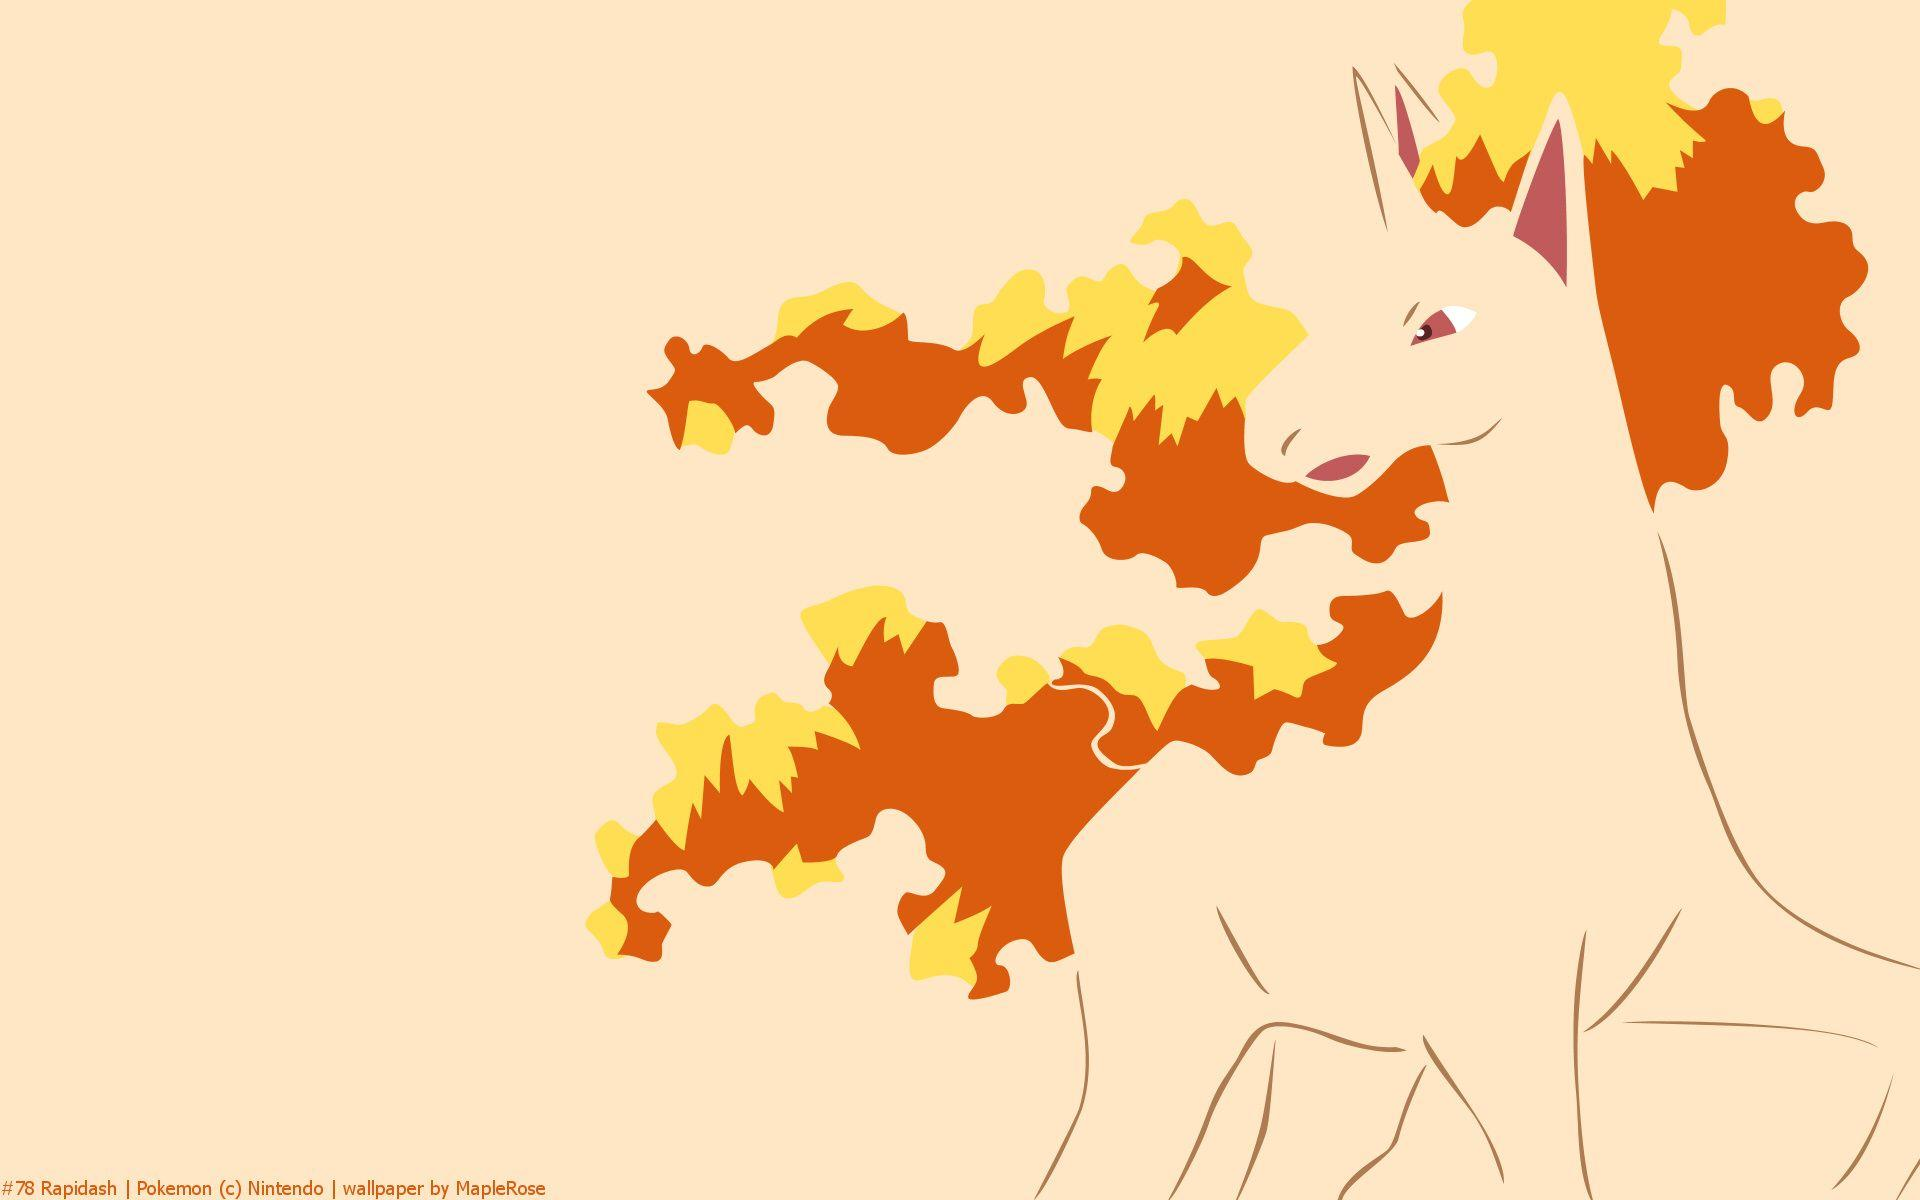 Rapidash Pokemon HD Wallpaper - Free HD wallpapers, Iphone ...